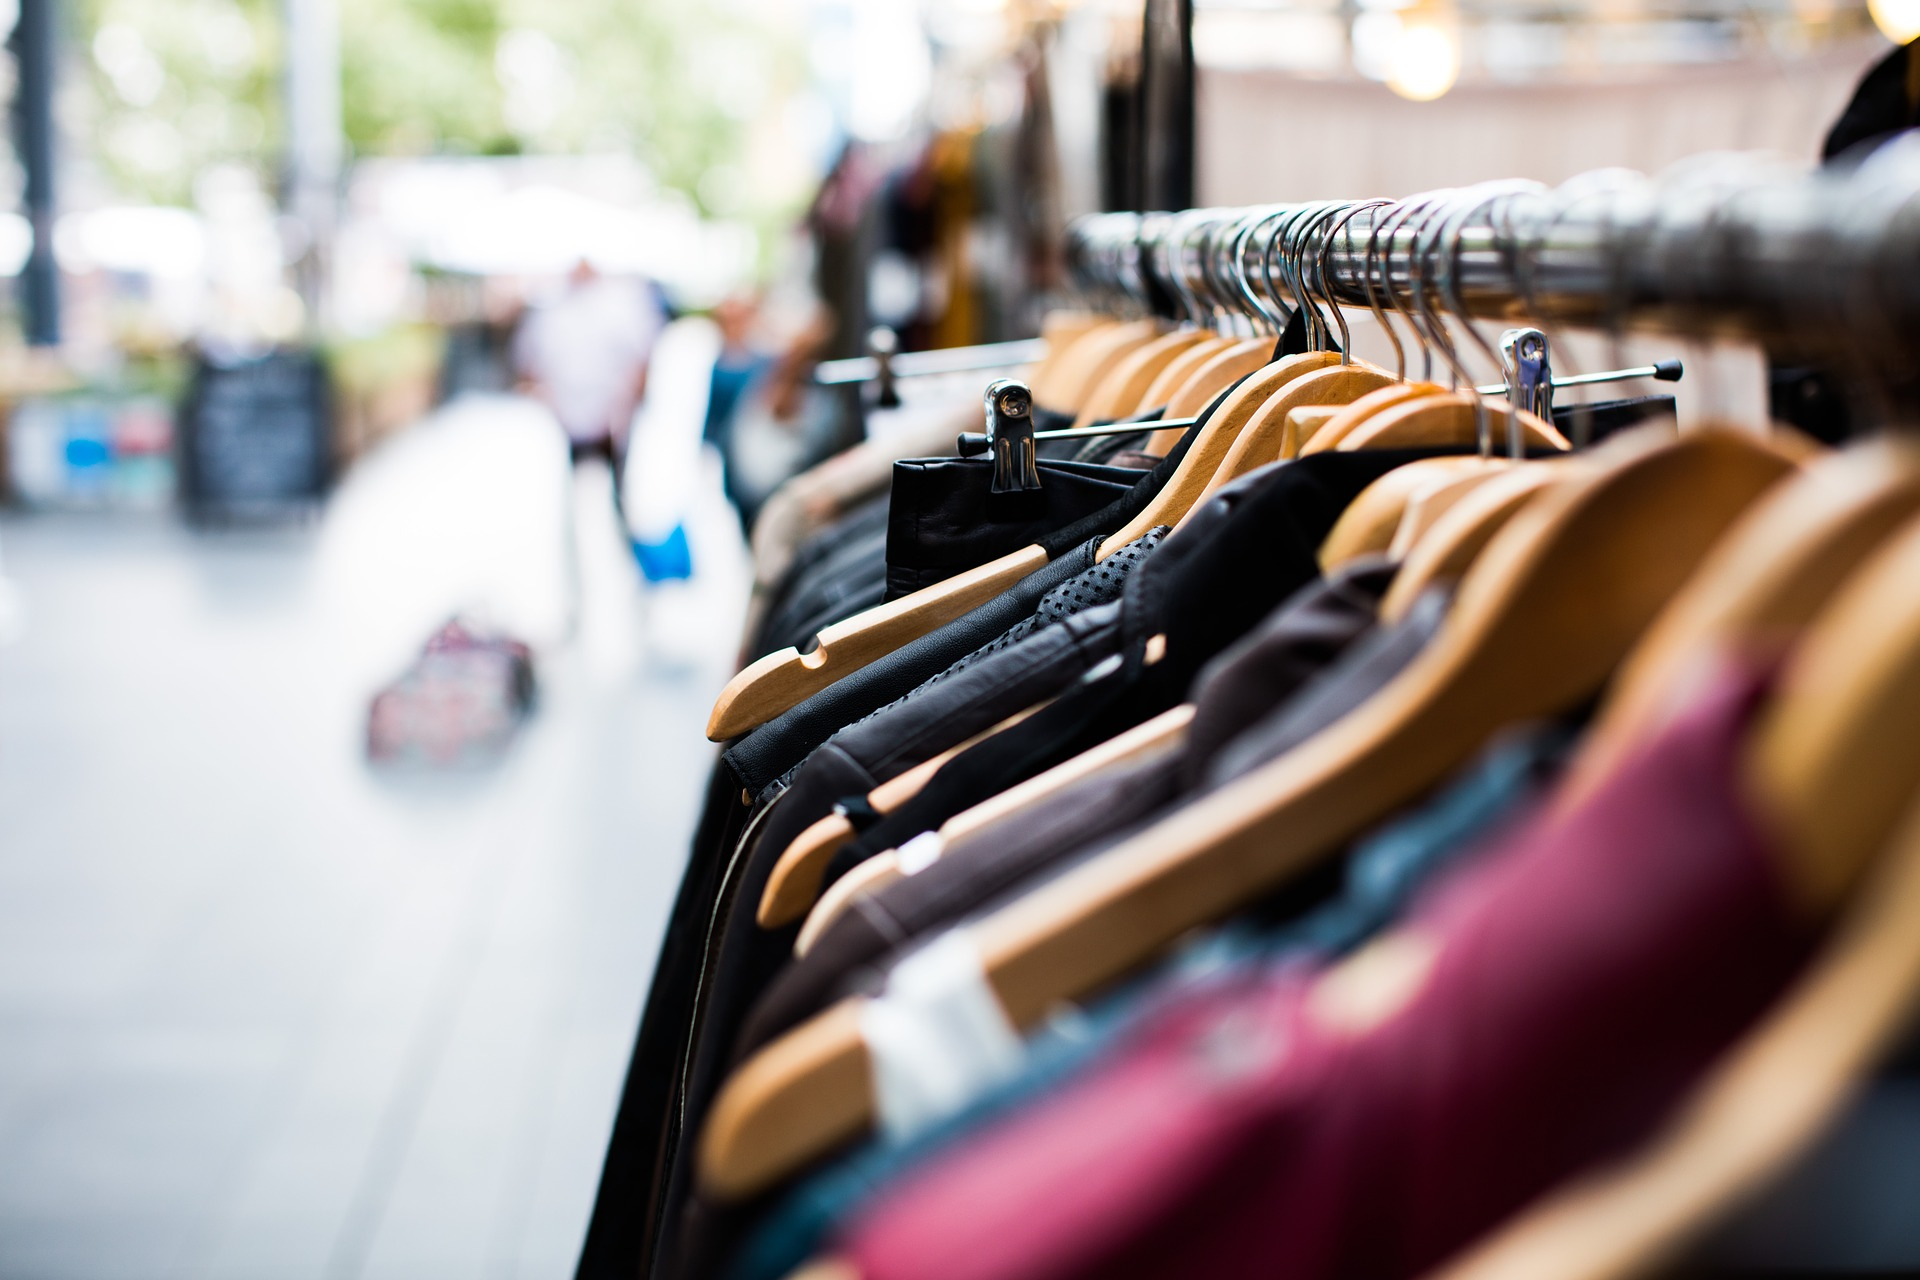 Row of a variety of clothes on a hanger outside.